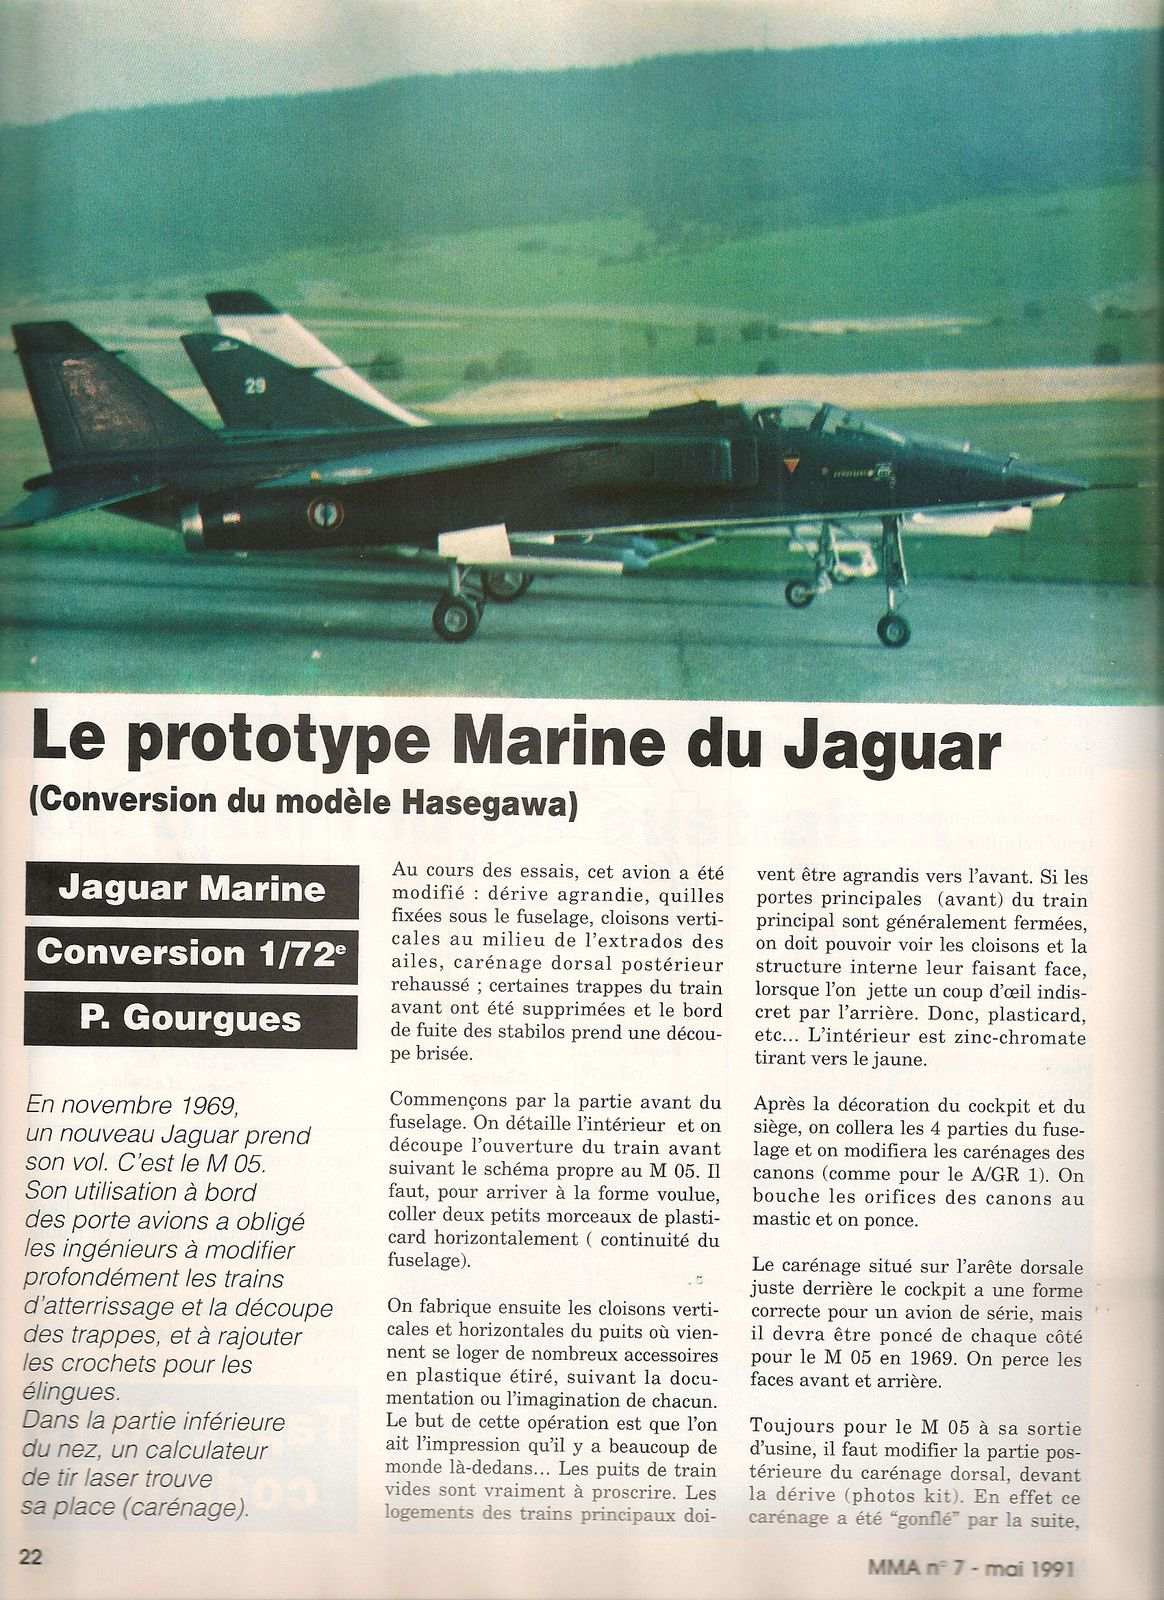 Jaguar versions Marine